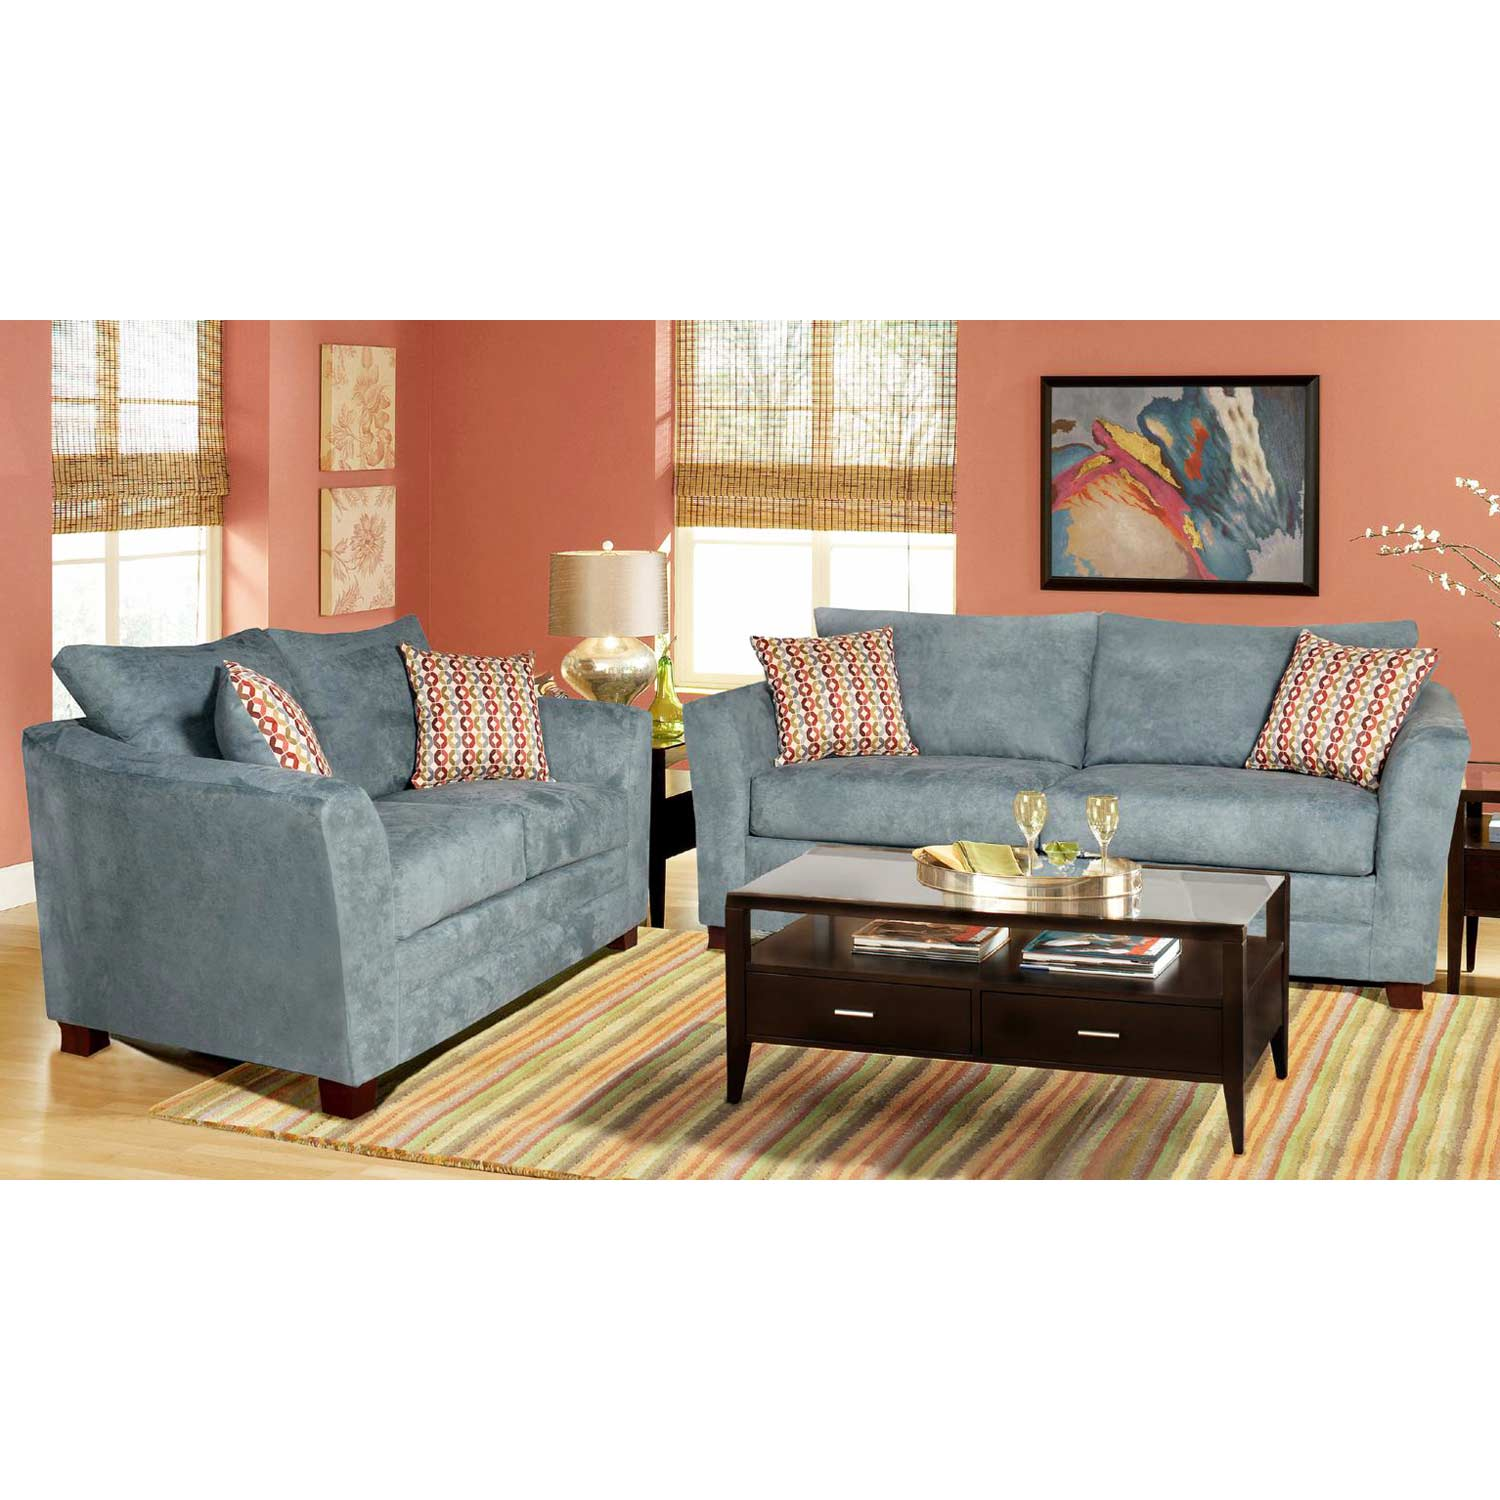 Barbara Flared Arm Loveseat - Montana Lagoon Fabric - CHF-251953-20